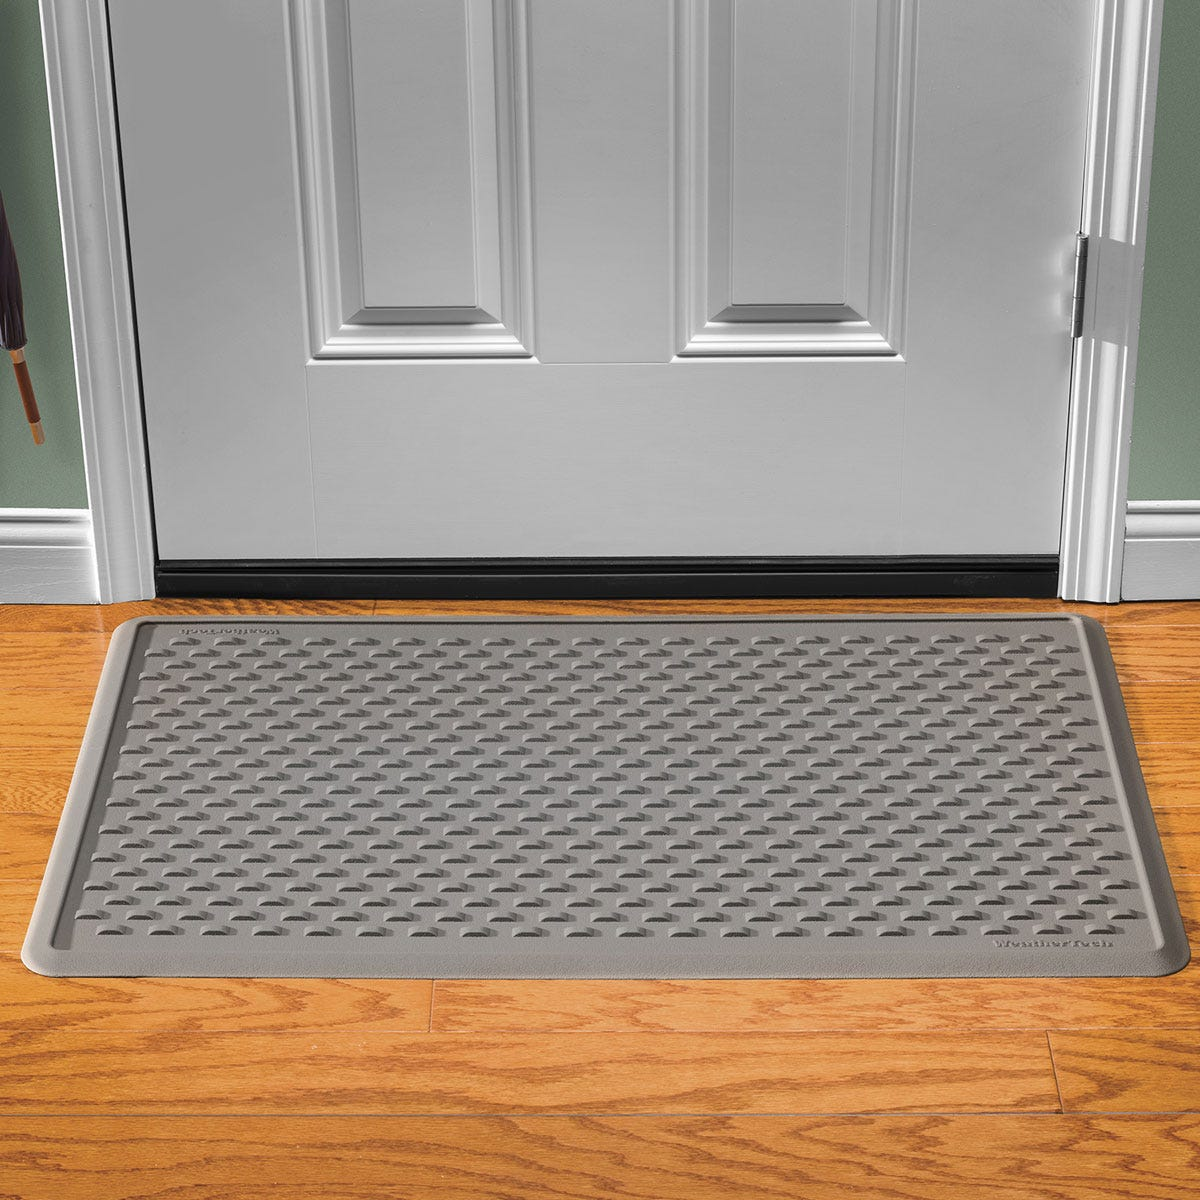 Weathertech indoormat other around the house around the more photos dailygadgetfo Image collections